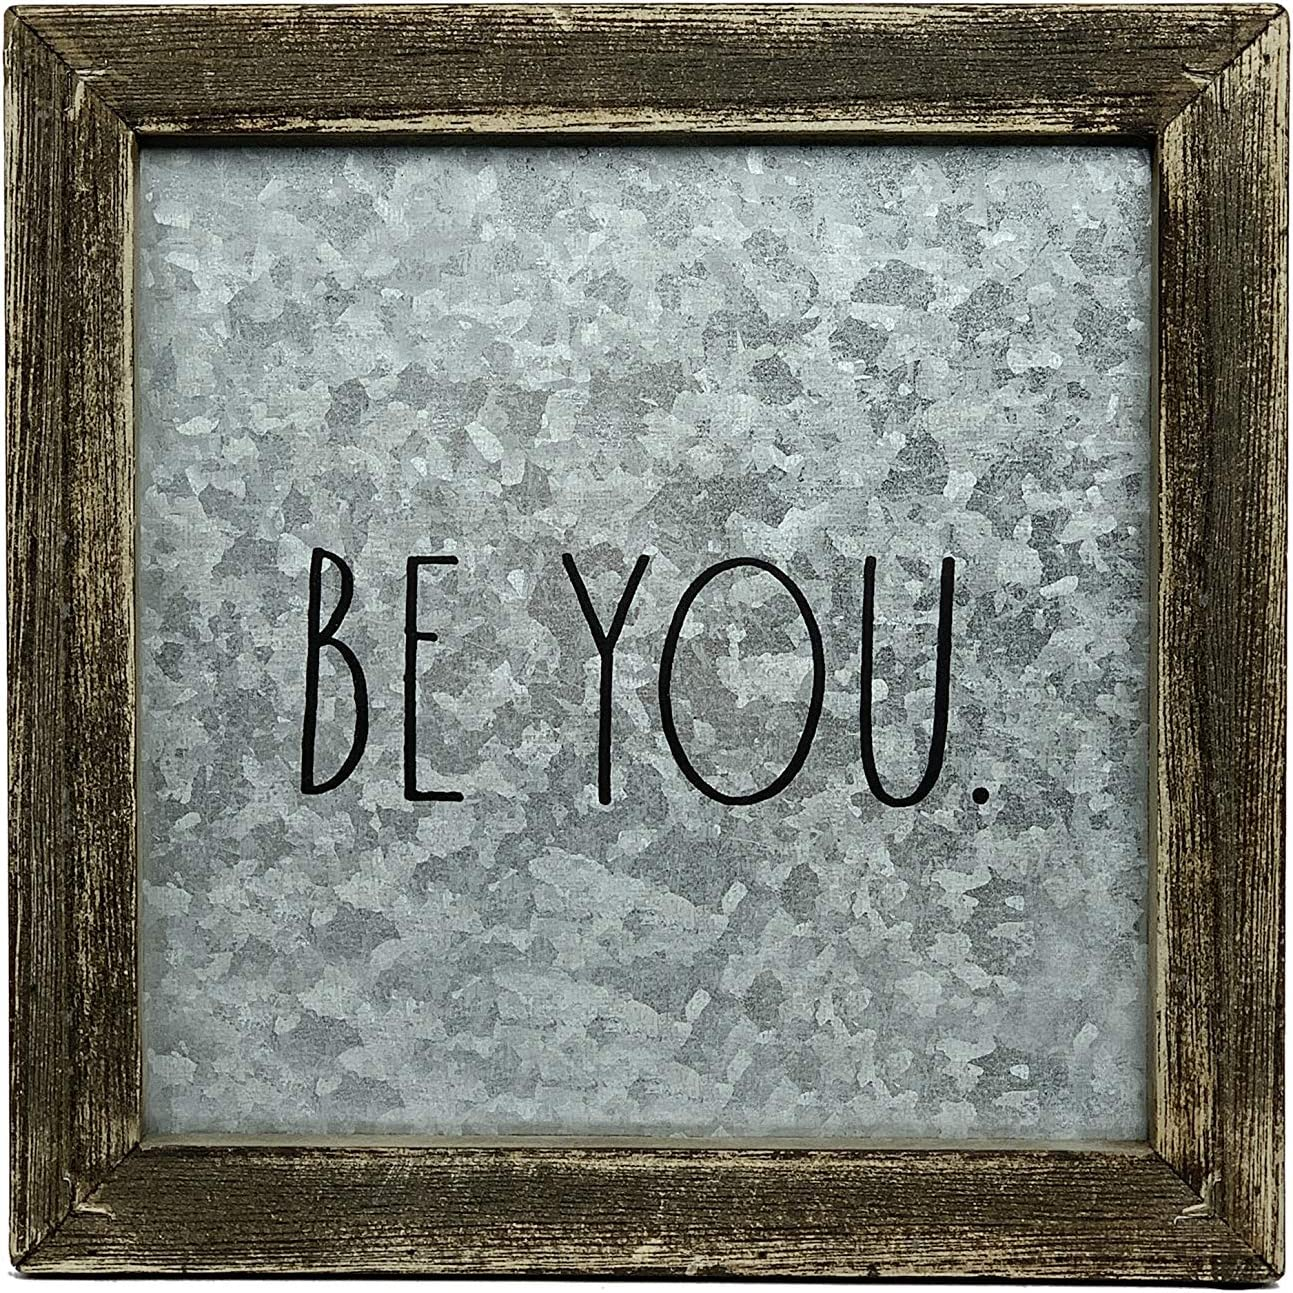 "Rae Dunn ""Be You"" Desk Plaque - Inspirational Message Desktop Sign for Home and Office Décor - Motivational Vintage Display for Cubicle, Work Space - Chic Distressed Wood and Metal"